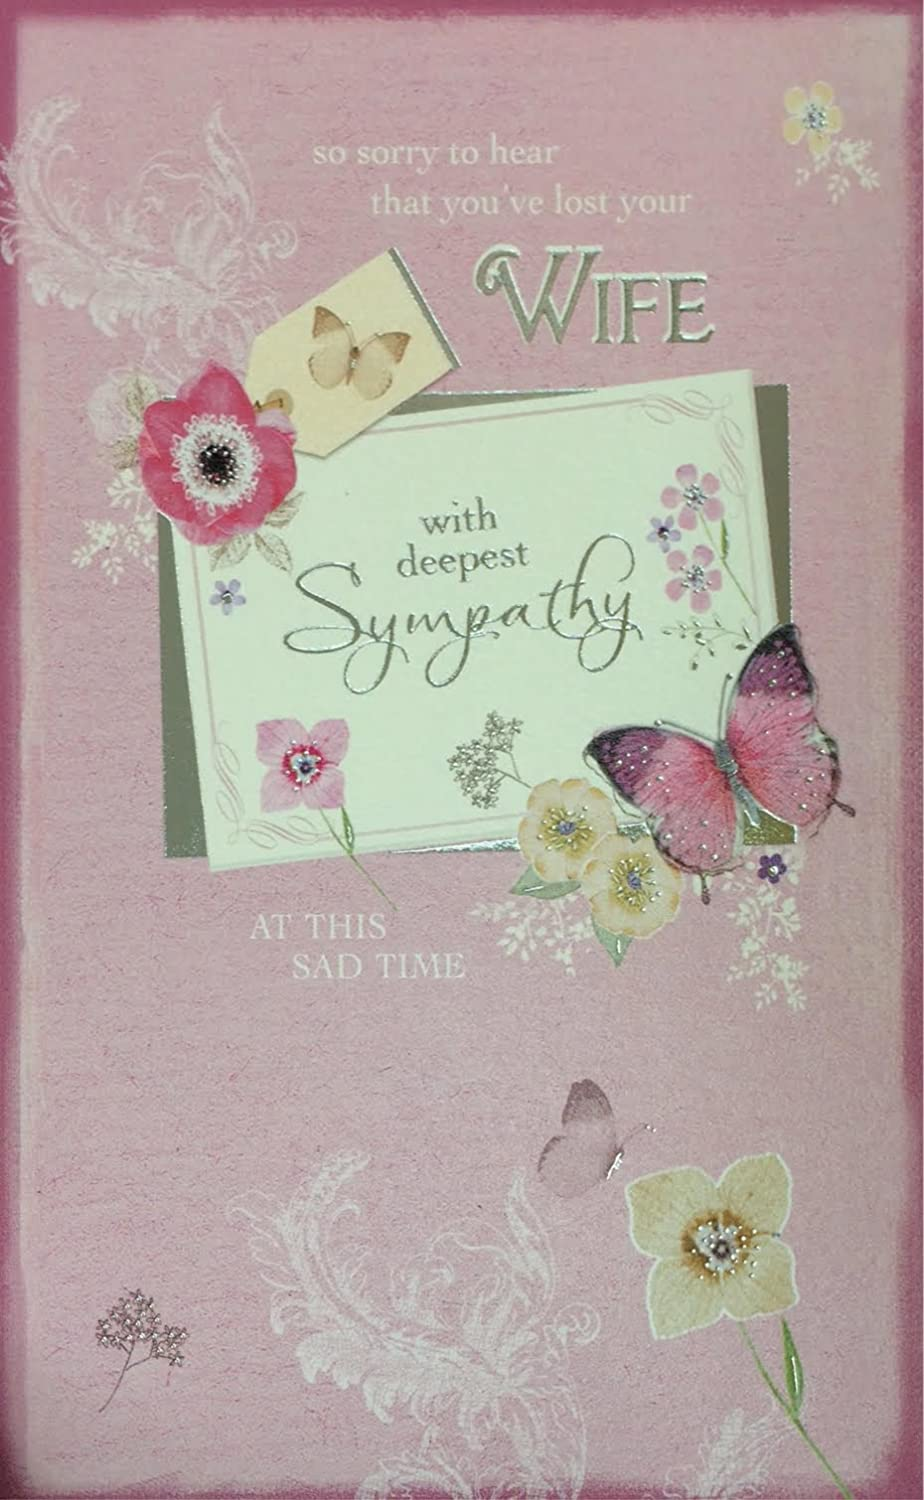 Loss Of Your Wife Sympathy Card So Sorry To Hear That Youve Lost